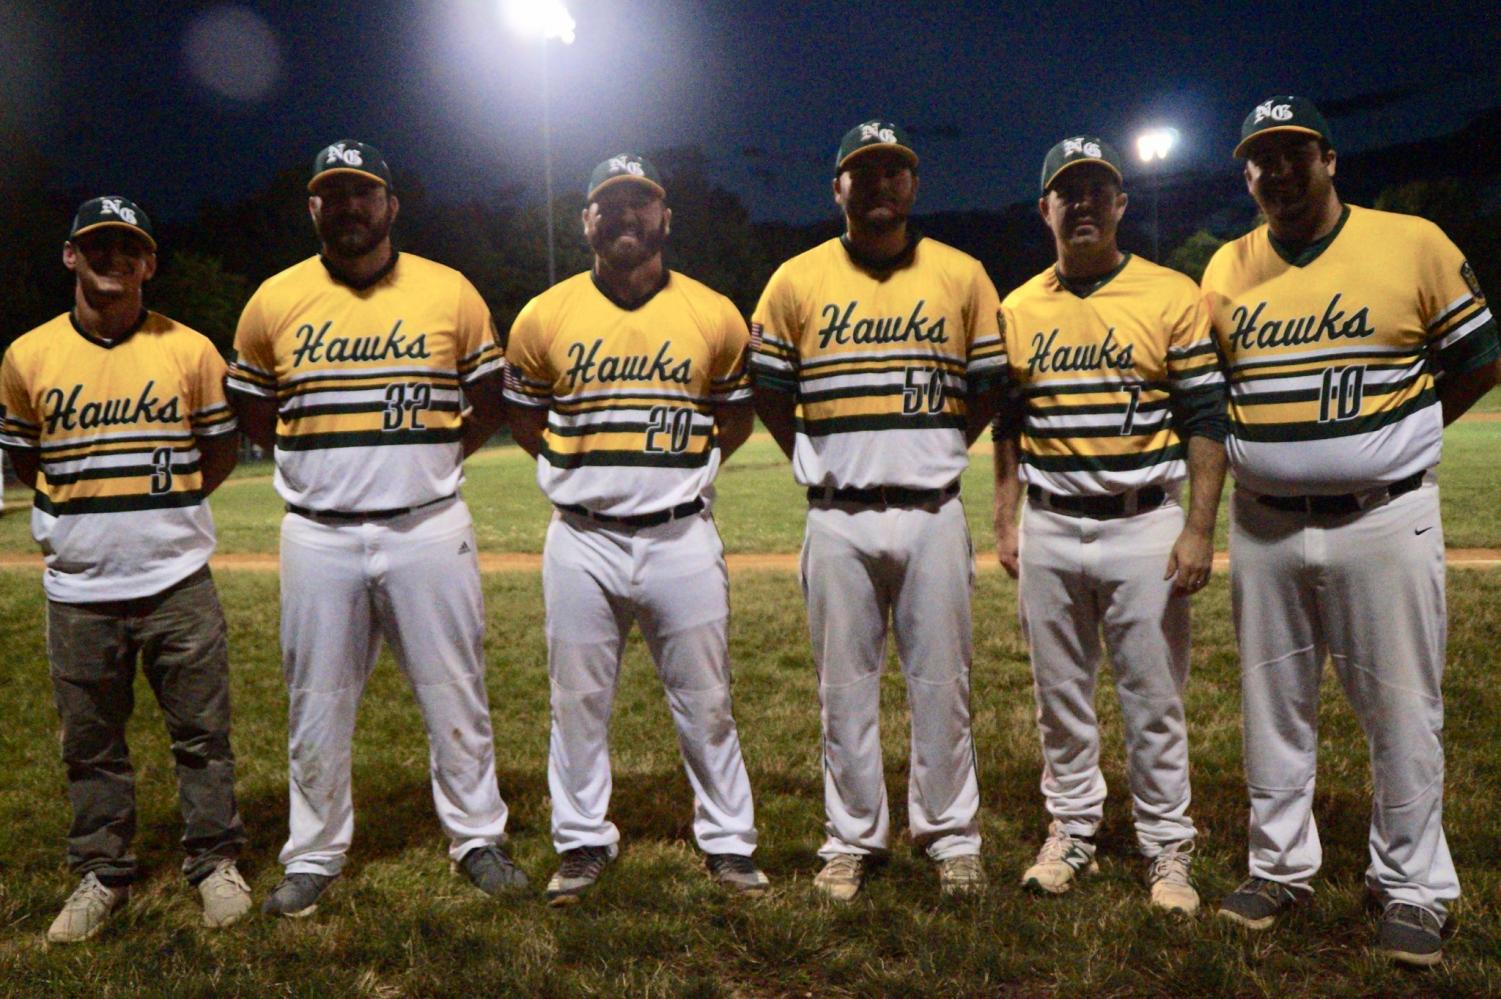 The Hawks coaching staff (from left to right: Coach Yac, Coach Smink, Coach Cameron, Coach Billetz, Coach Bart, and Coach Bertucci) pose for a picture after a 3-2 extra inning victory over Hatfield-Towamencin.